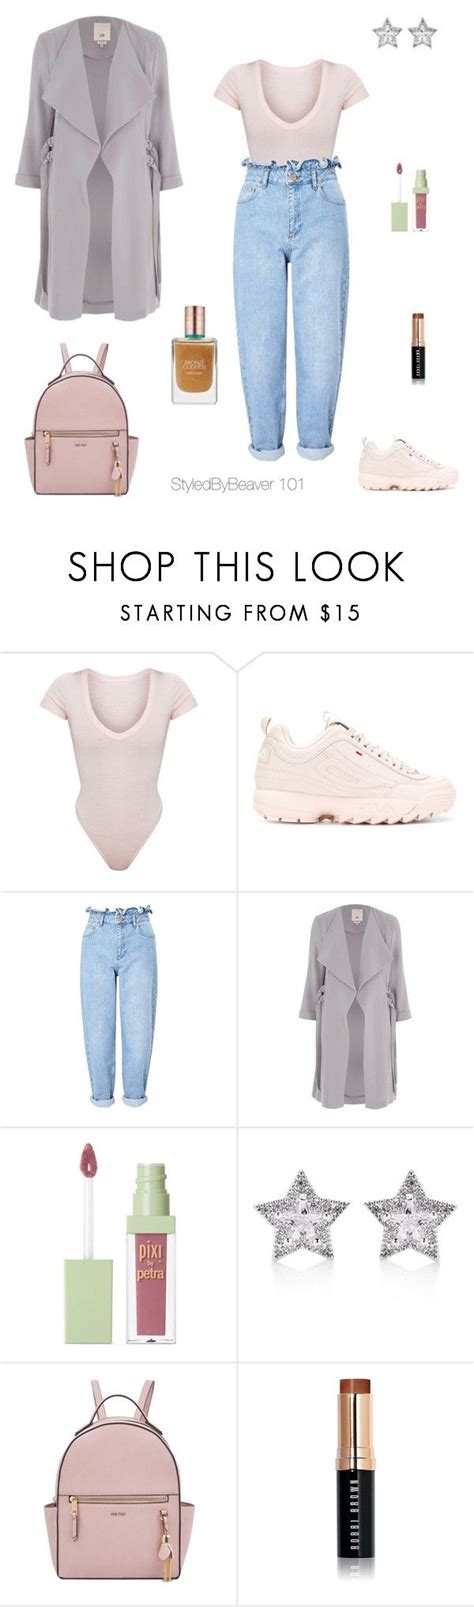 """""""SPRING FASHION  THAT BODY"""" by beavers-mum on Polyvore"""